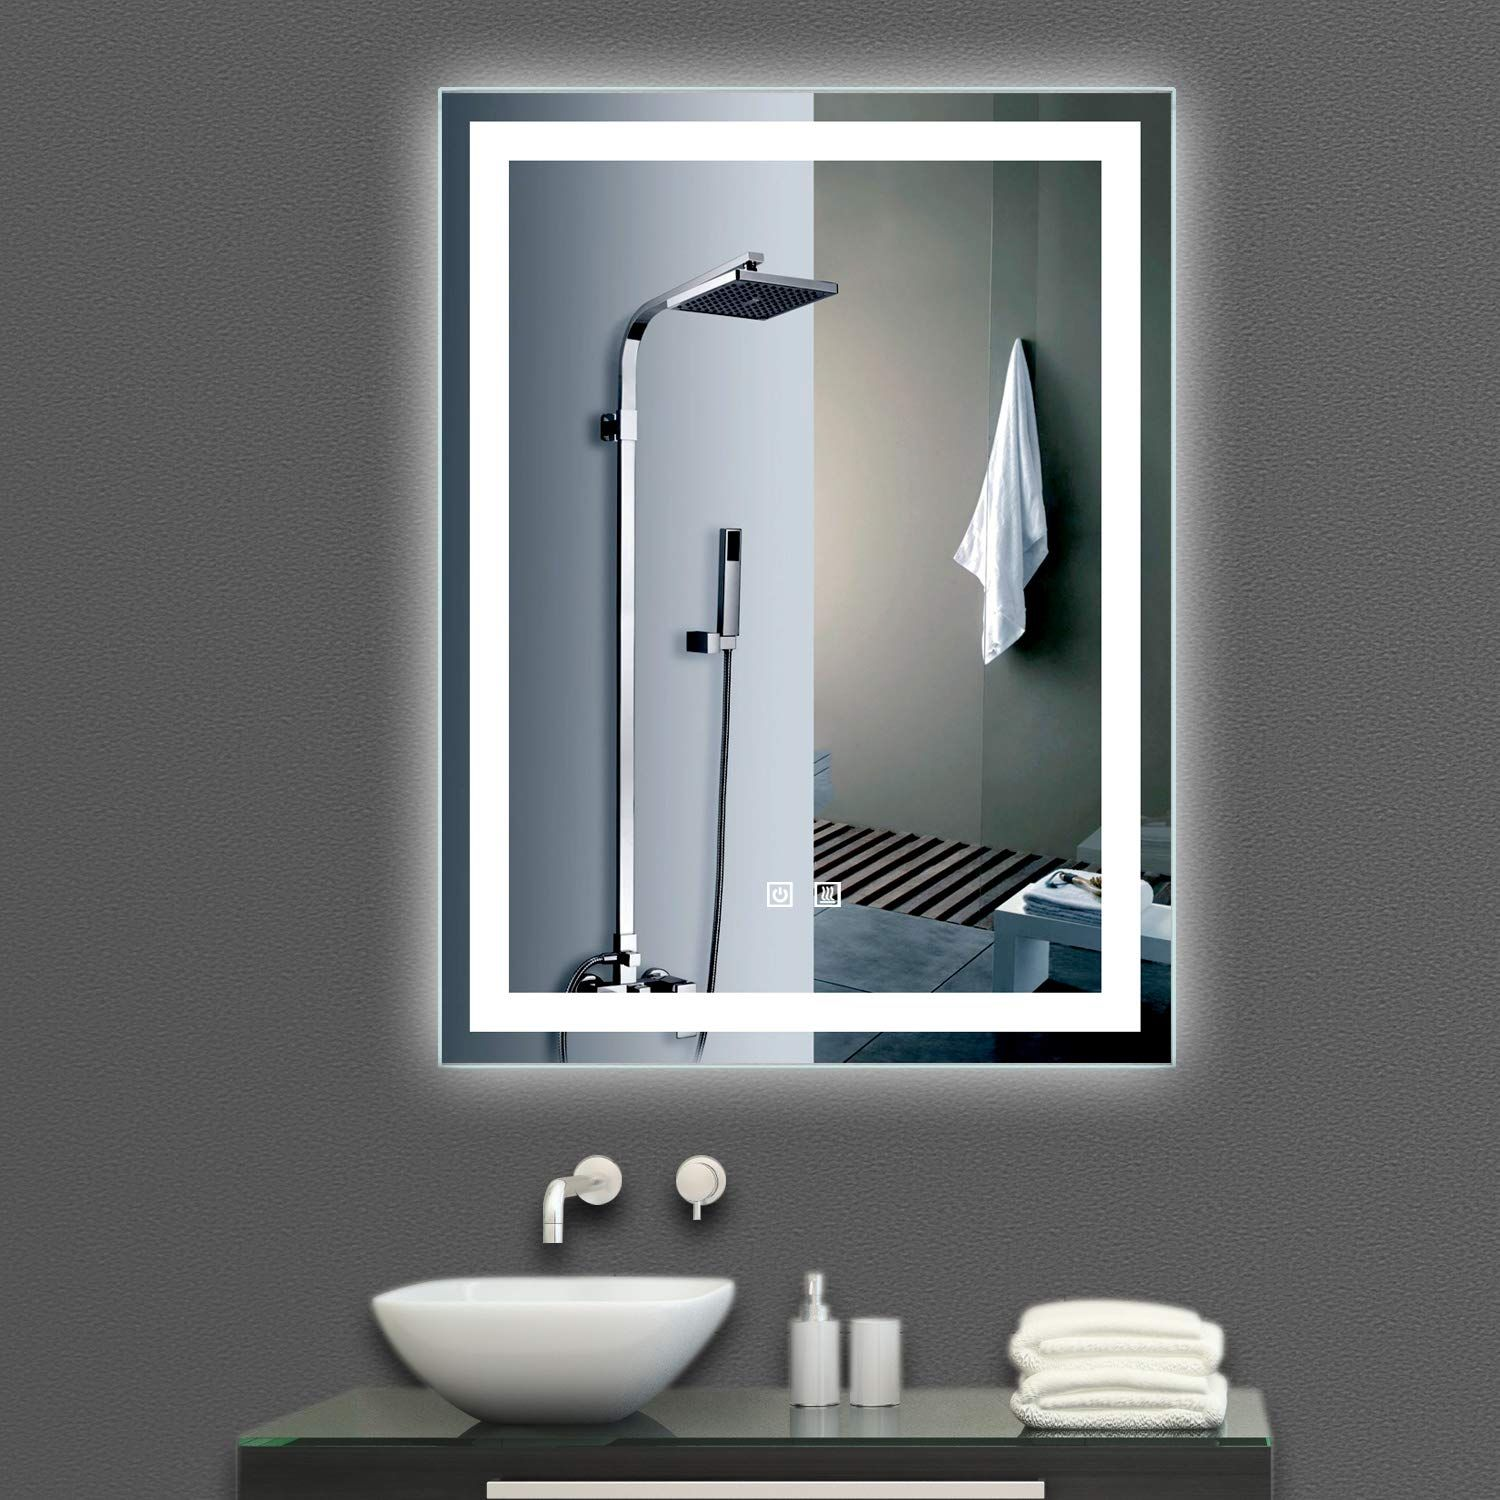 Interactive bathroom mirror window razor blade